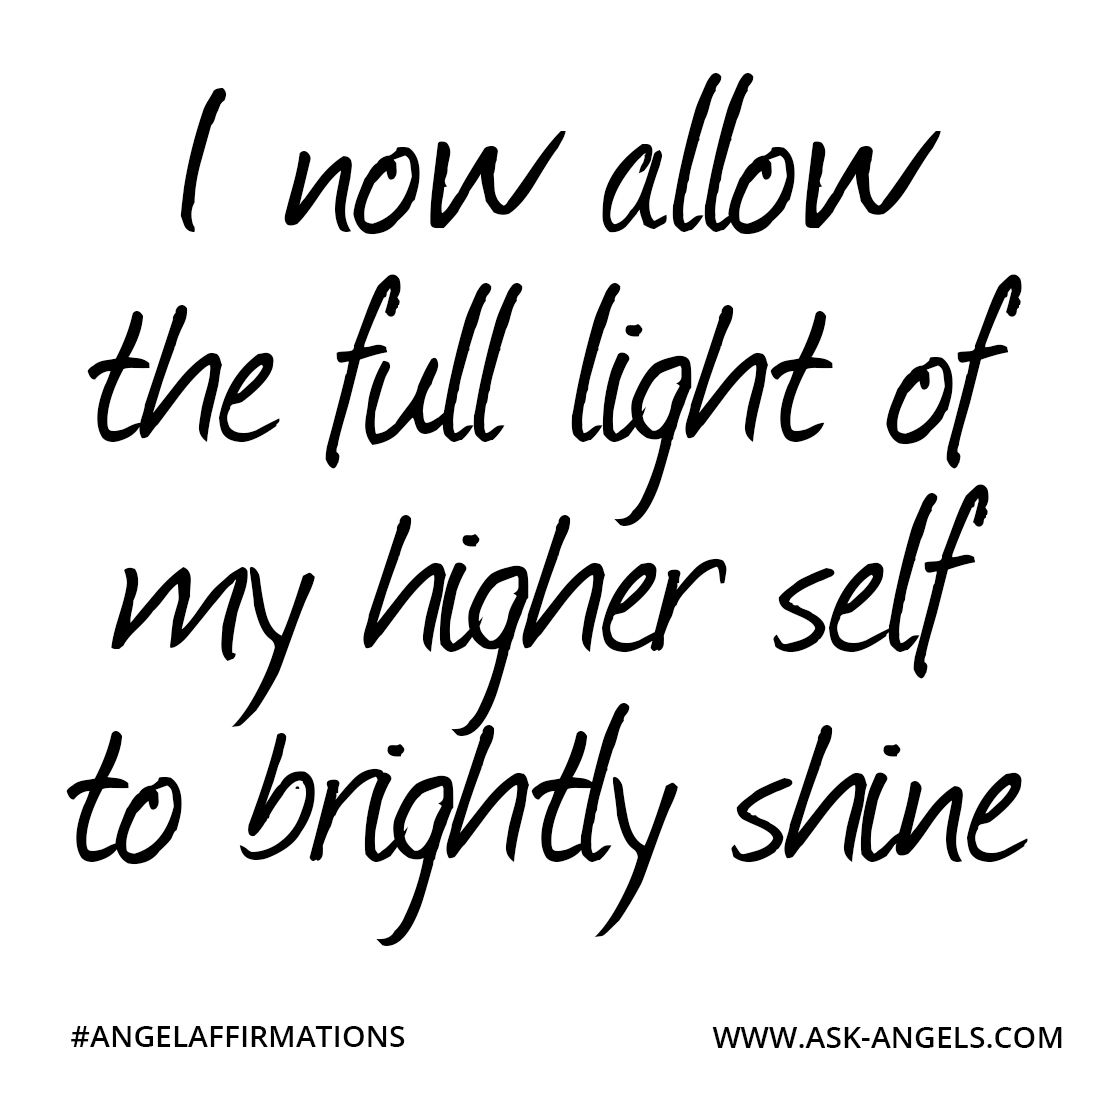 I Now Allow The Full Light Of My Higher Self To Brightly